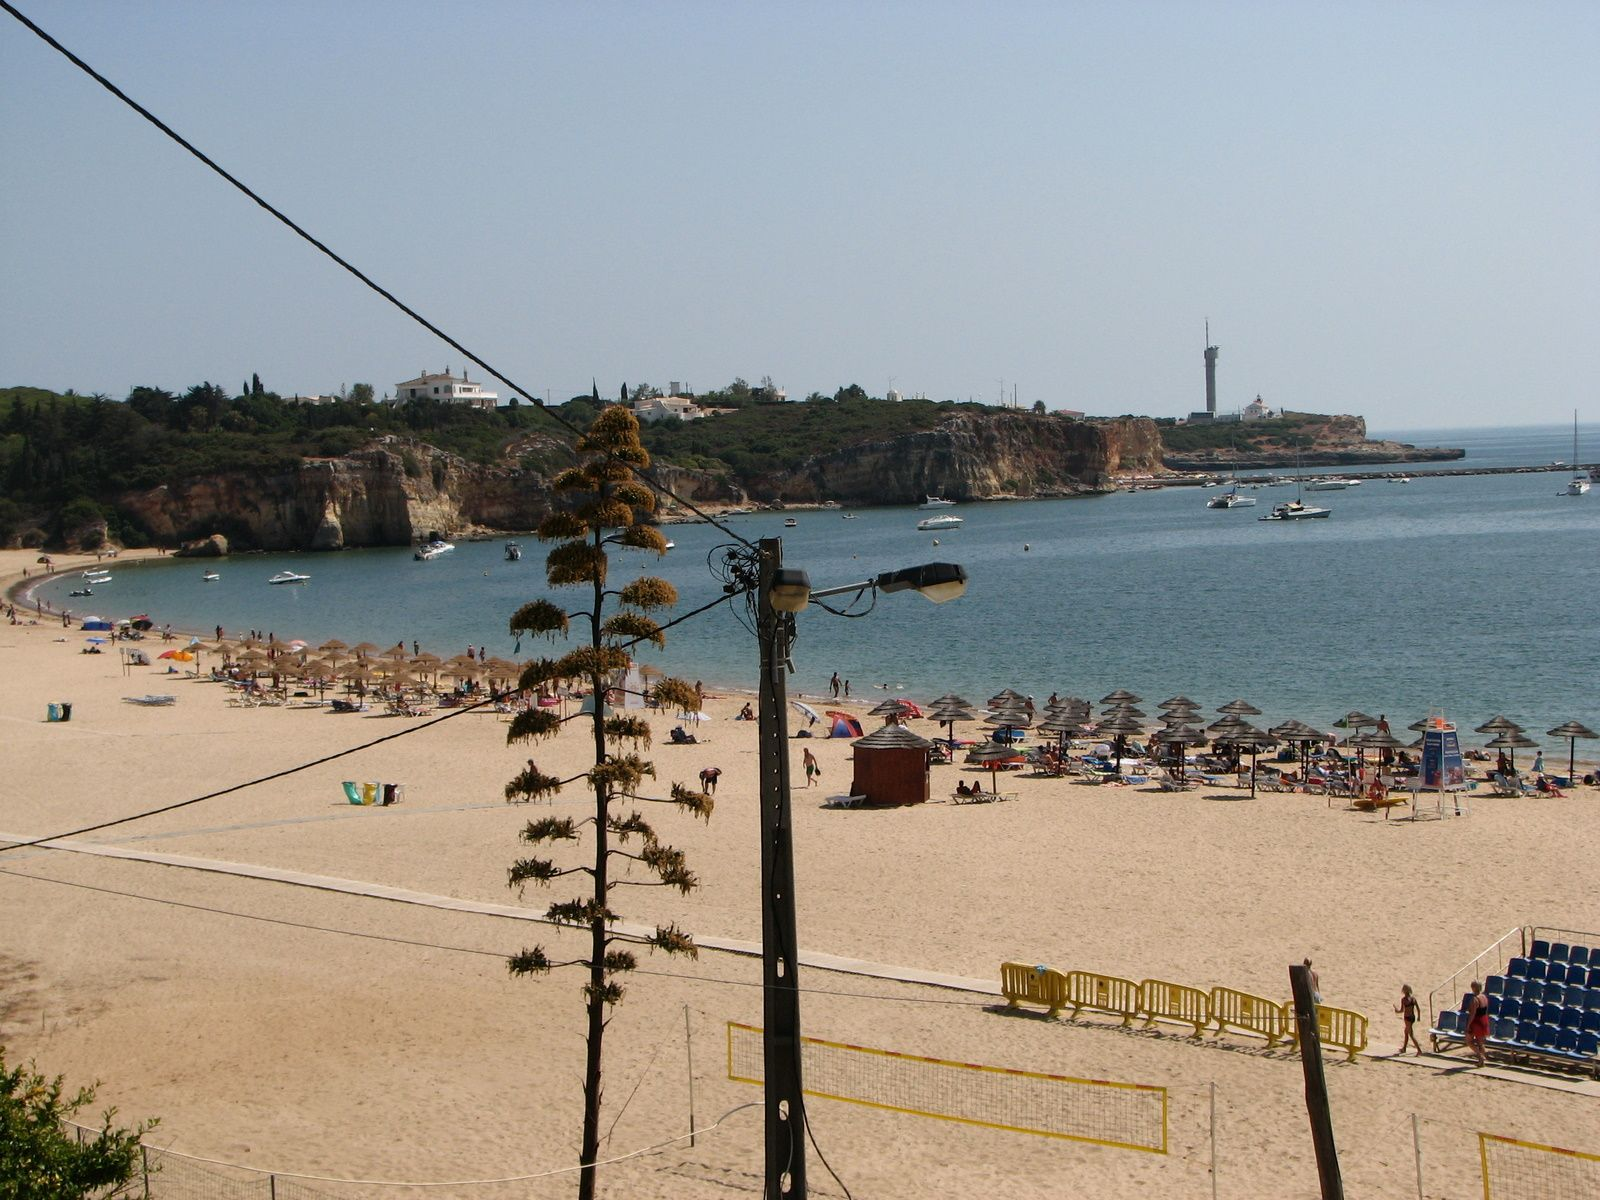 Beach at Ferragudo - The Algarve, Portugal - http://xblogs.me/beach-at-ferragudo-the-algarve-portugal/  #Portugal